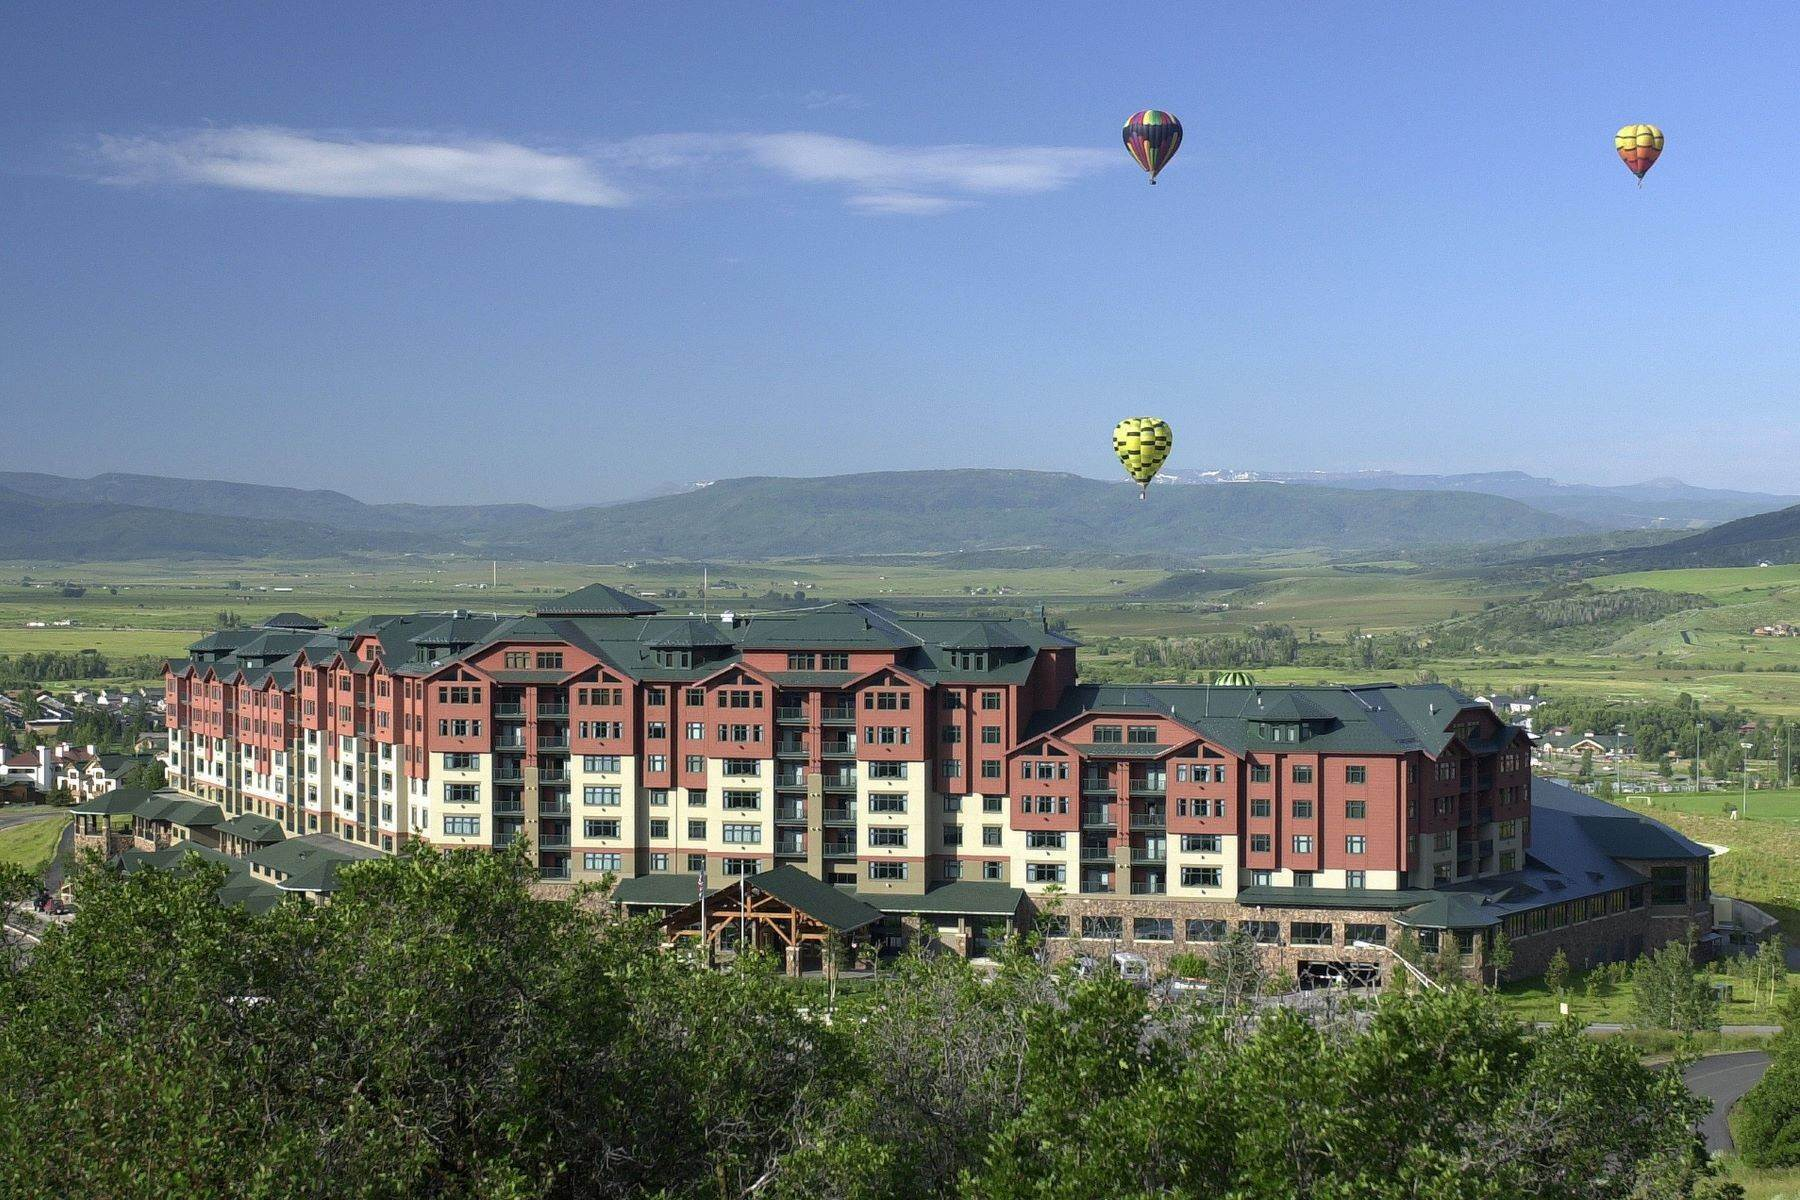 fractional ownership prop for Sale at 1/8 Share at The Steamboat Grand Resort Hotel 2300 Mt Werner Circle 431/432 Cal1 Steamboat Springs, Colorado 80487 United States